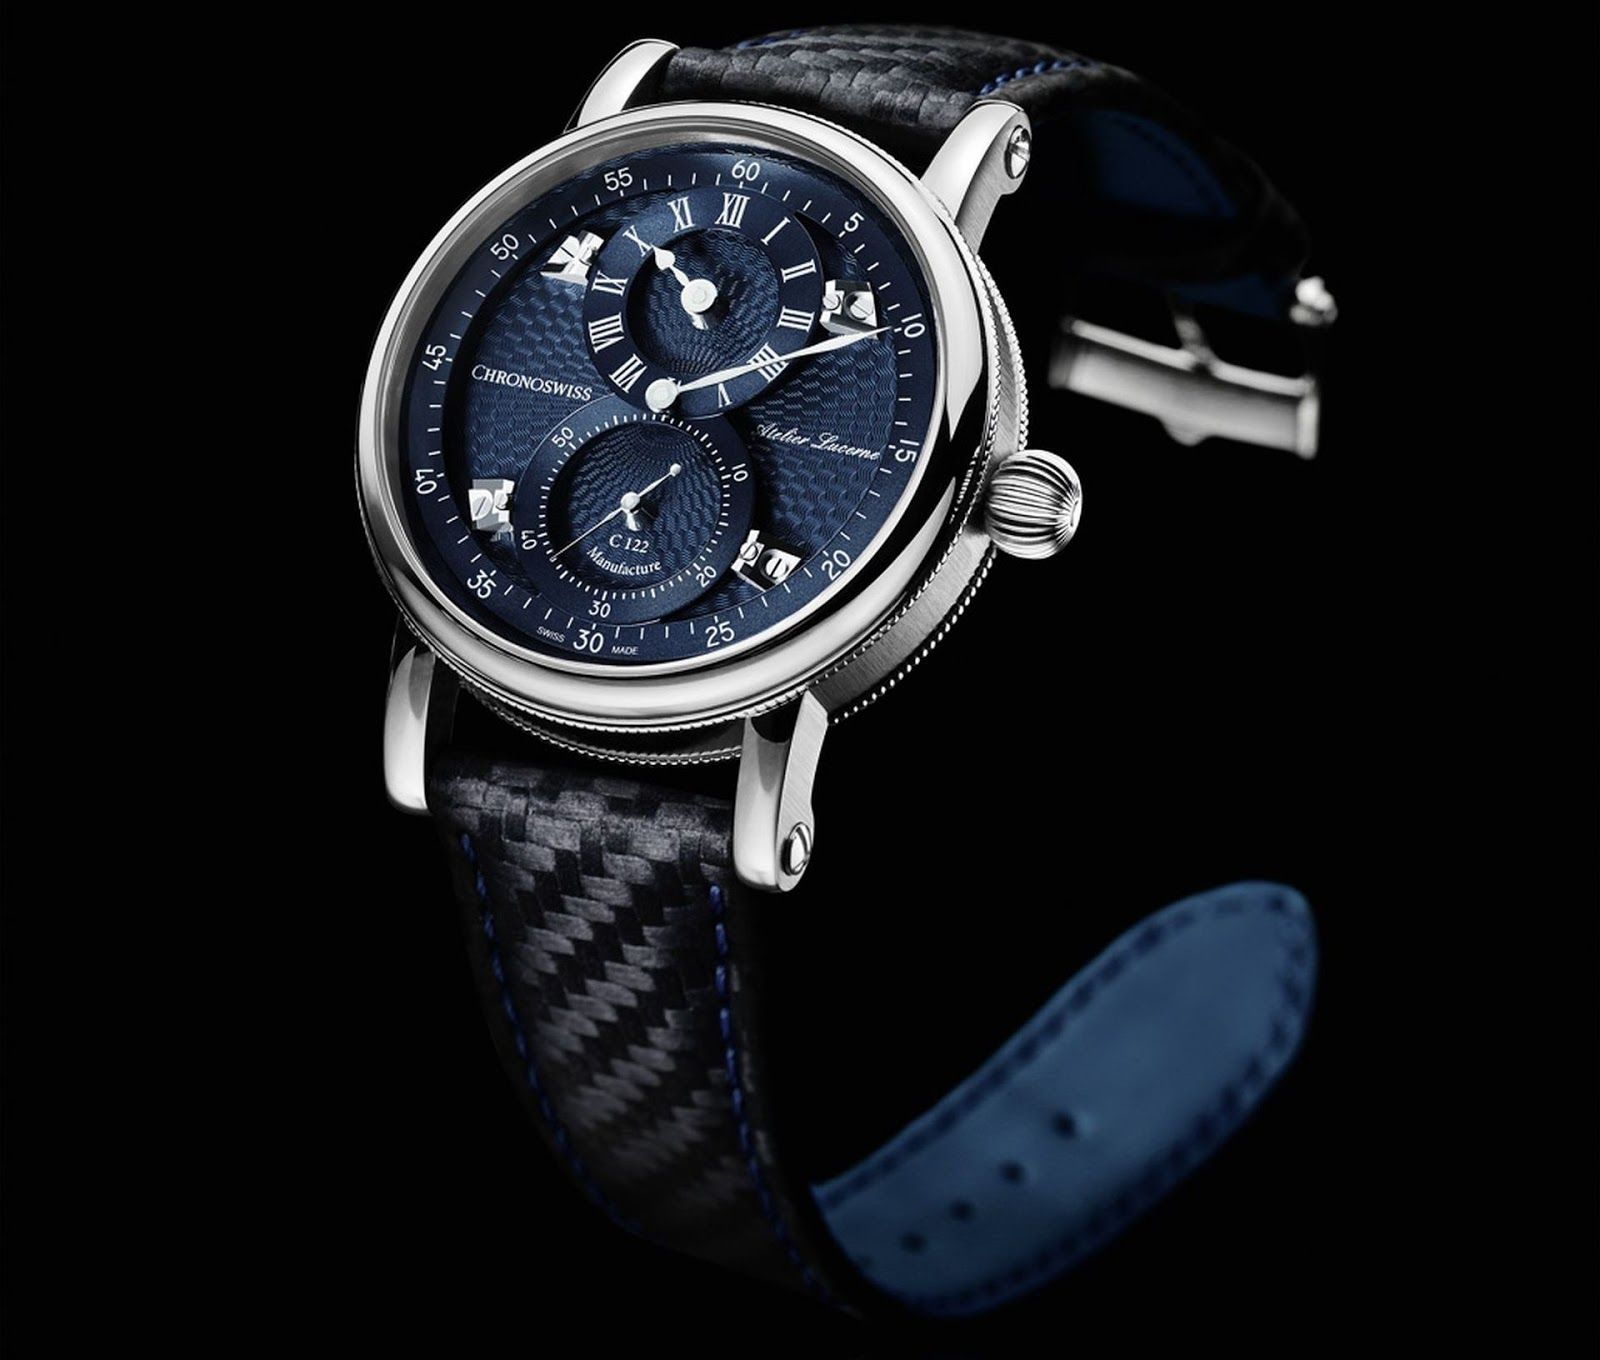 sihh flying bovet watches fleurier tourbillon amadeo edouard